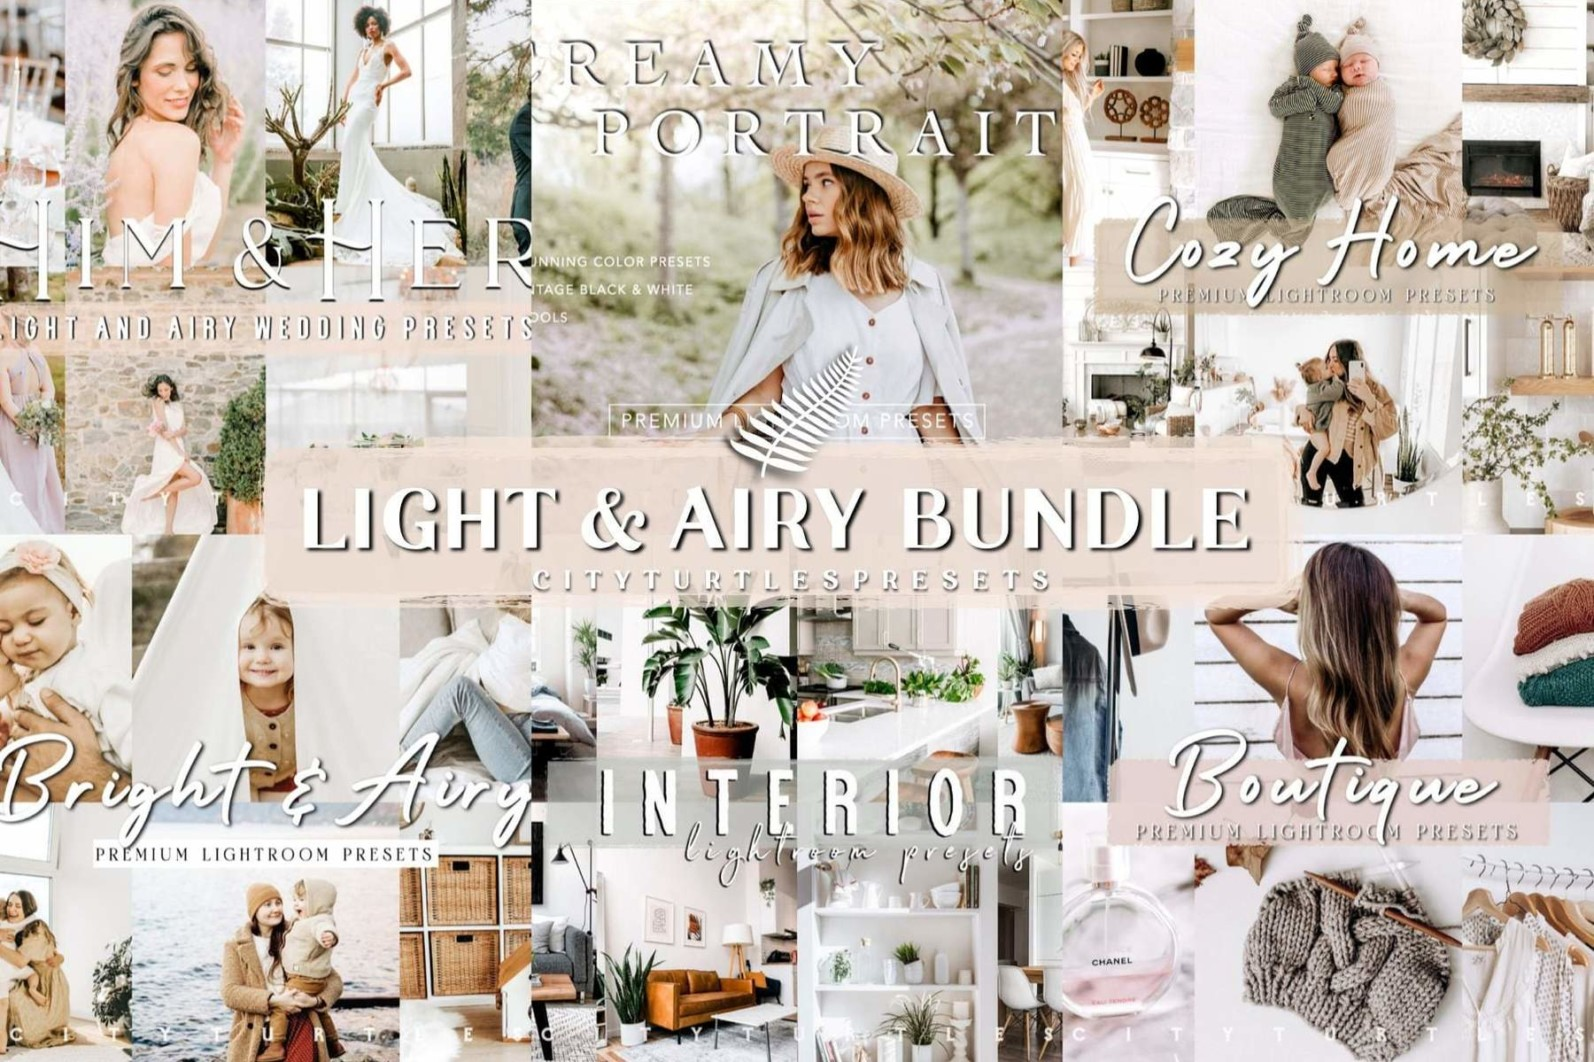 THE LIGHT & AIRY BUNDLE - Natural Clean Bright Lightroom Presets for Desktop + Mobile - light airy preset bundle lightroom desktop mobile filters photo editing best photography presets -